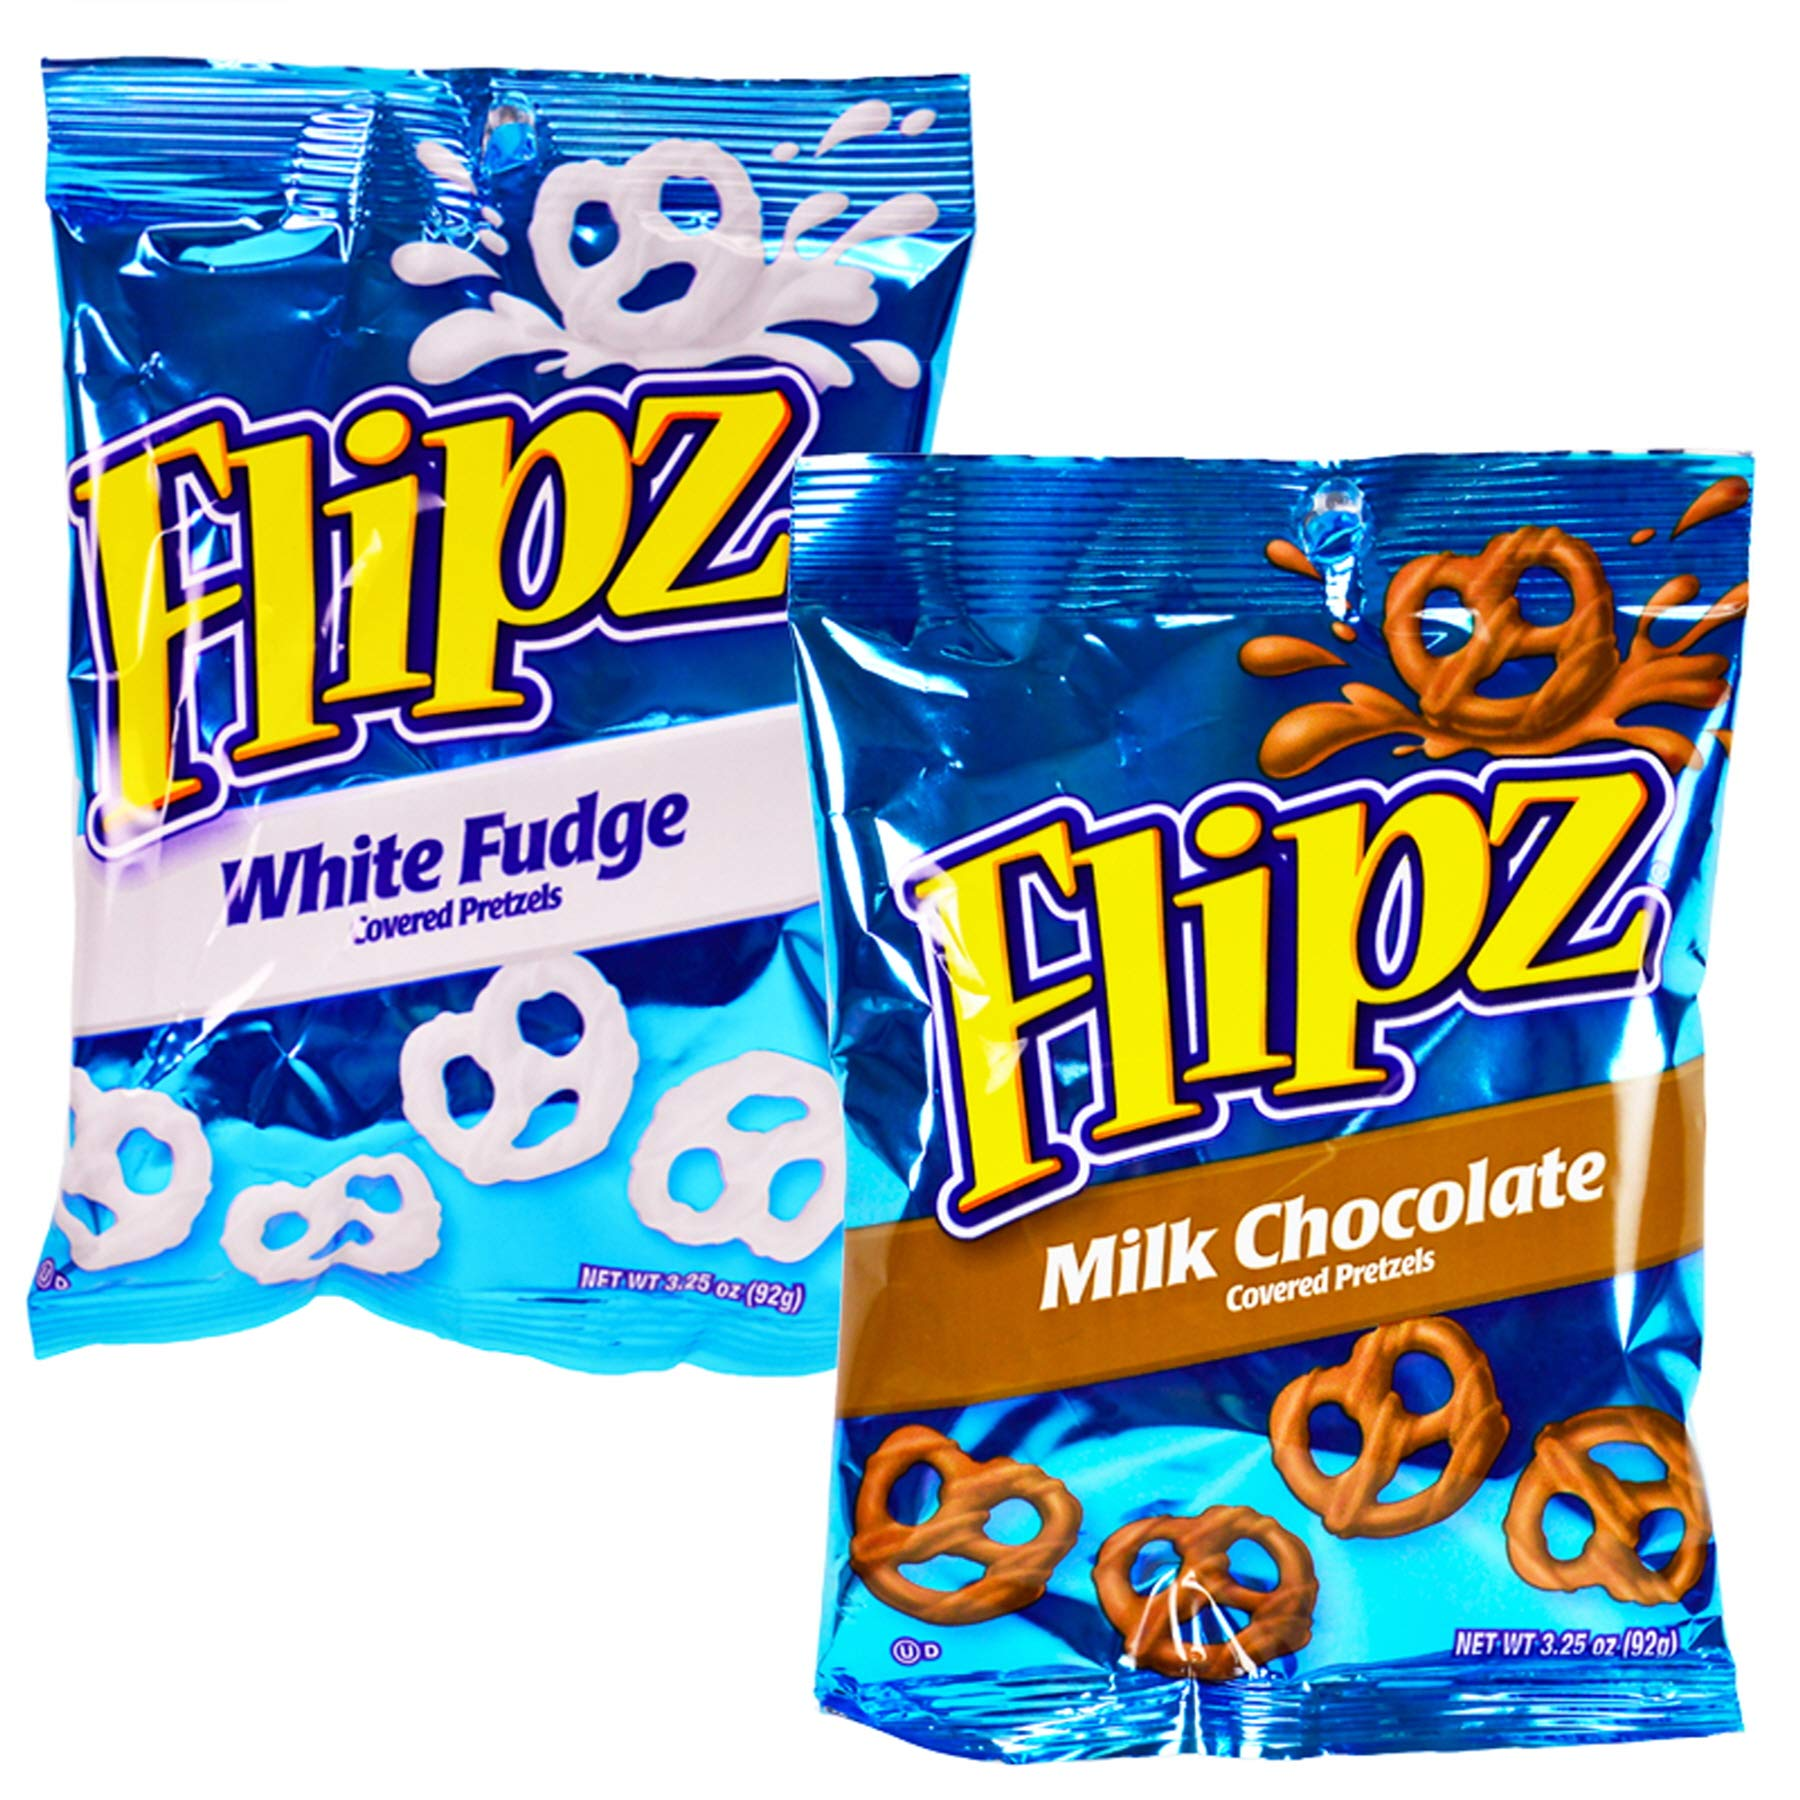 (Pack of 72) Flipz Pretzels White Fudge, Milk Chocolate, Covered Pretzel, Assorted 3.25oz